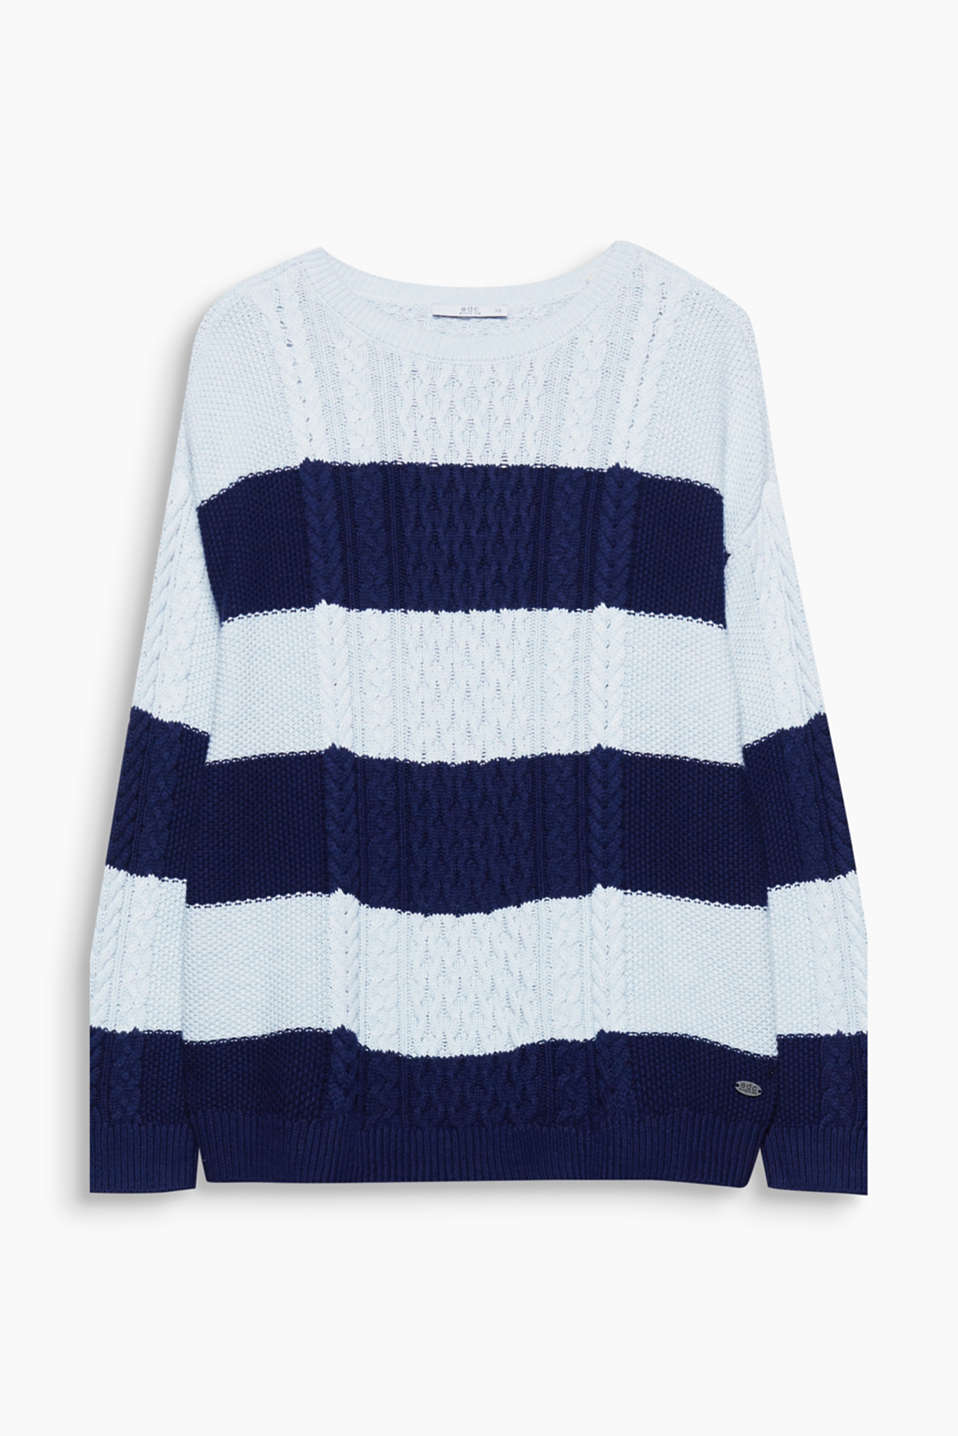 We love knitwear! A cable pattern and cool black and white look make this jumper an eye-catching piece.